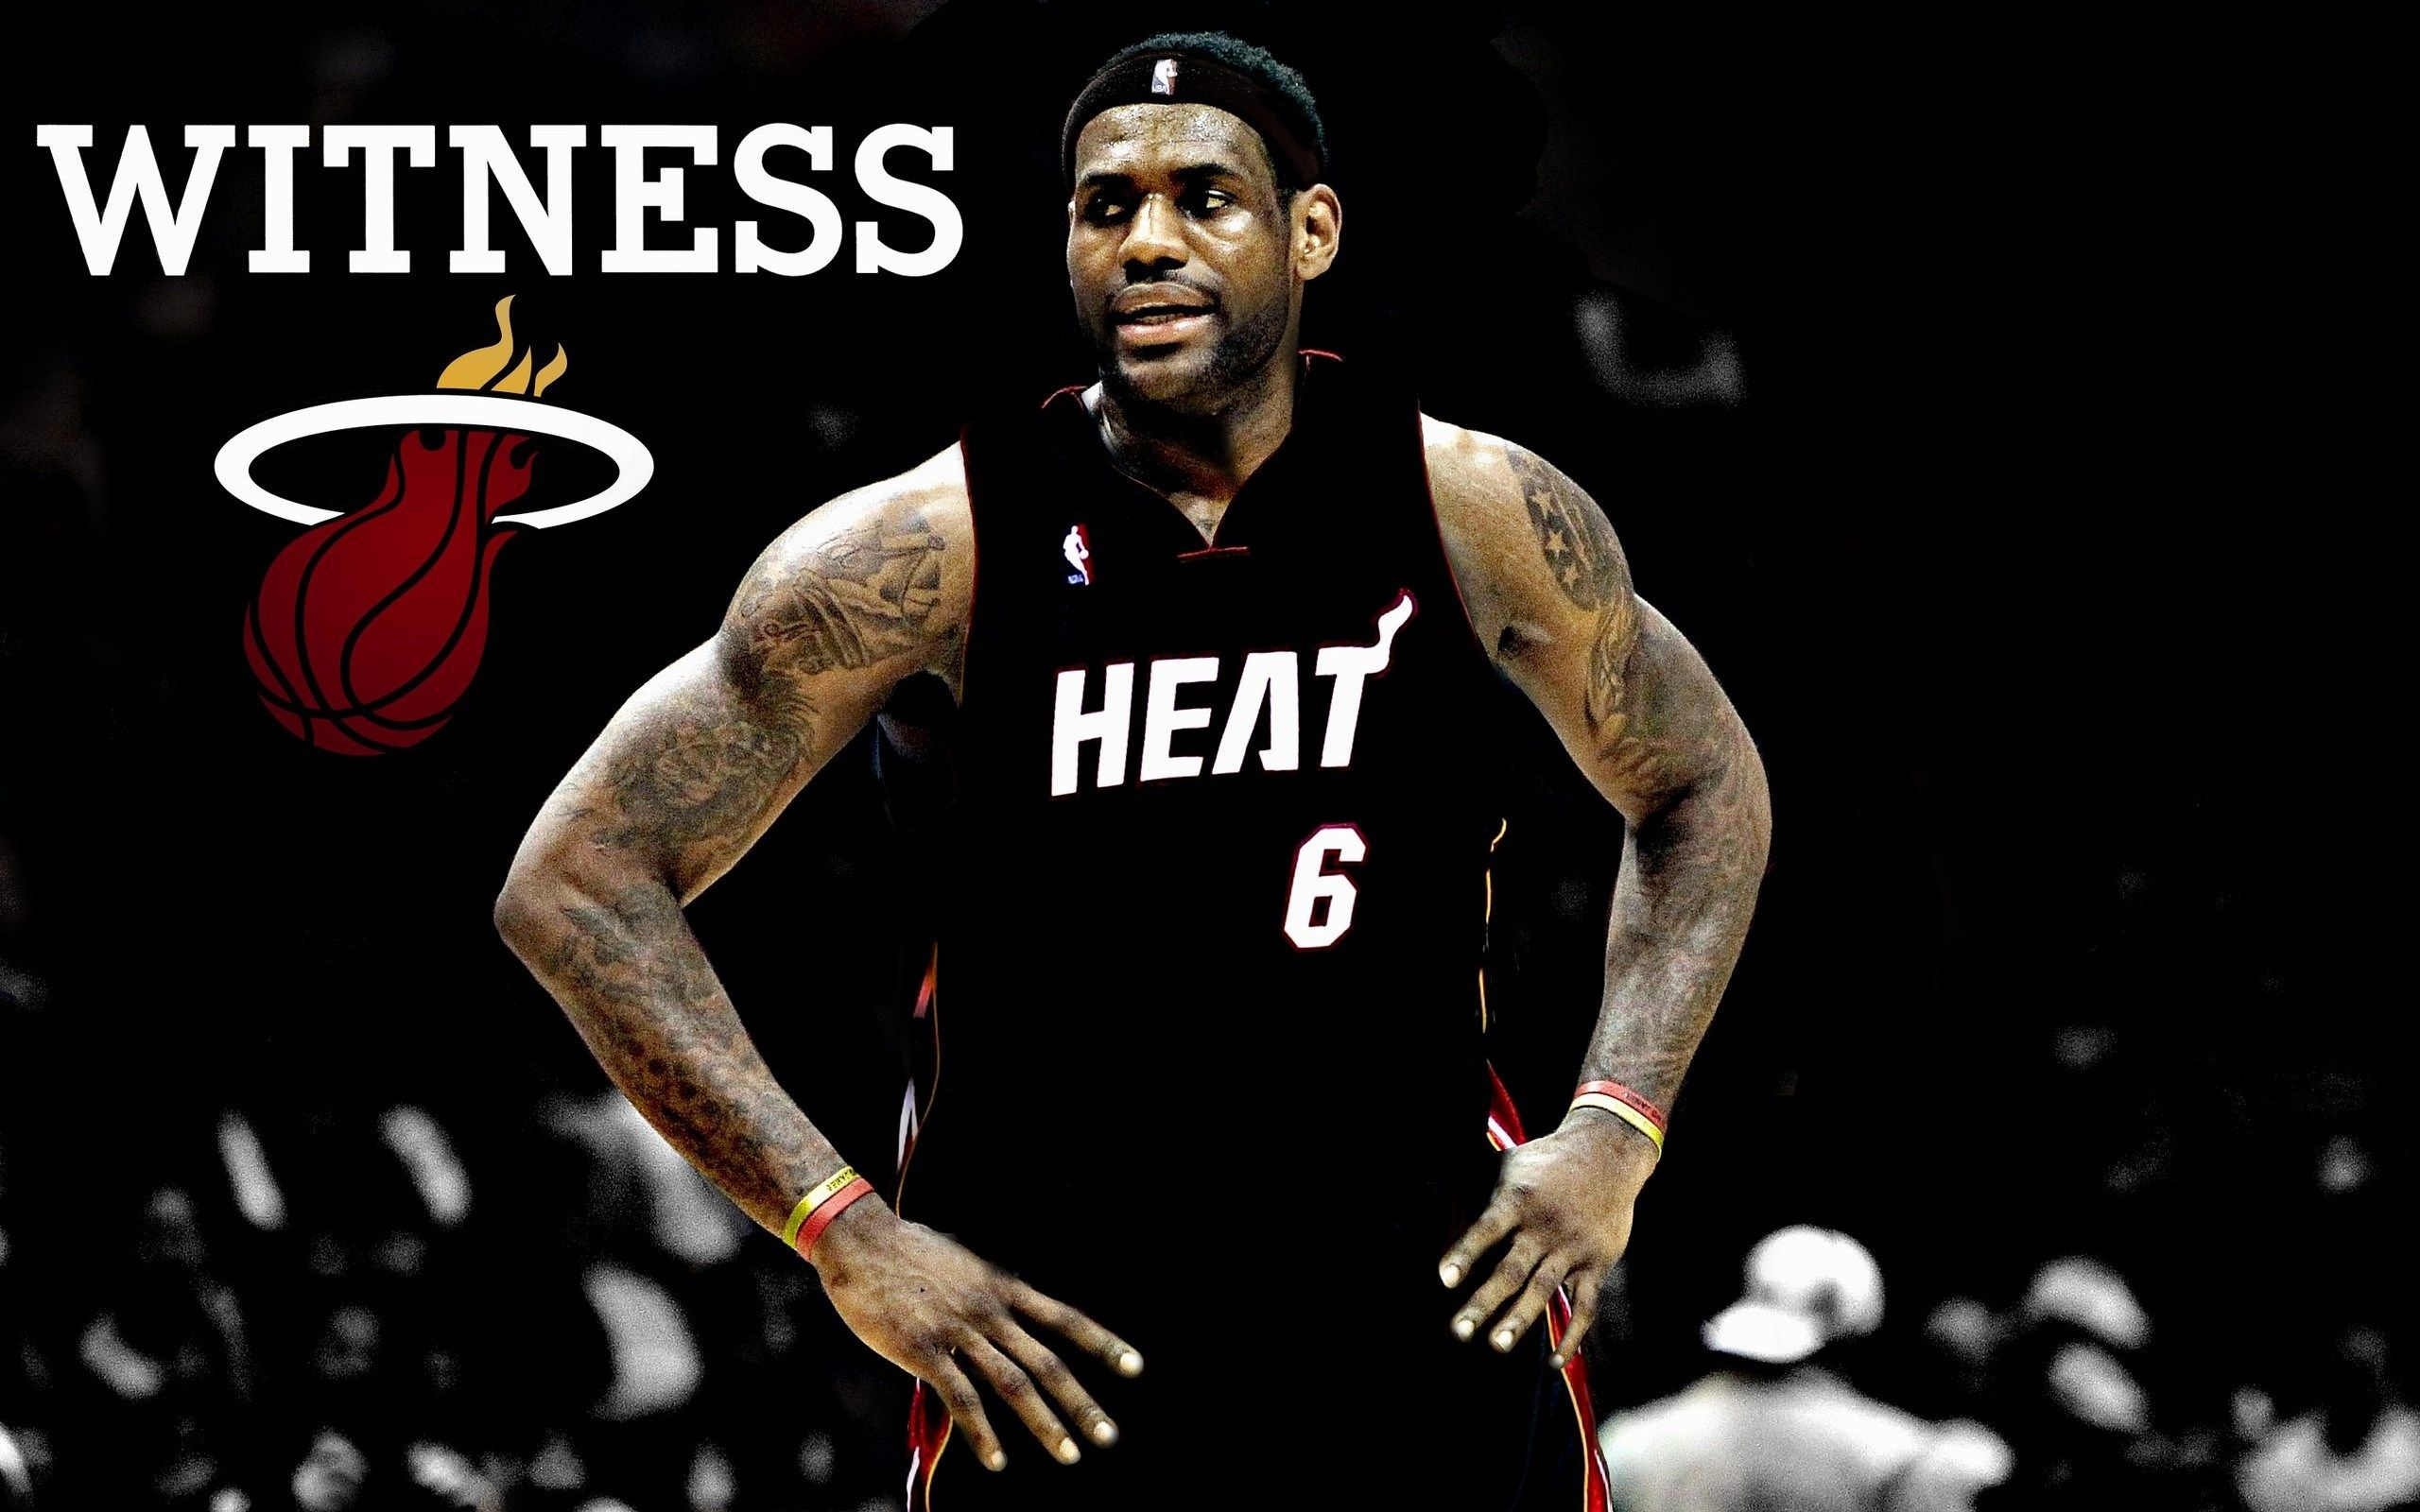 Hd Miami Heat Wallpaper Lebron James Miami Heat Lebron James Background Lebron James